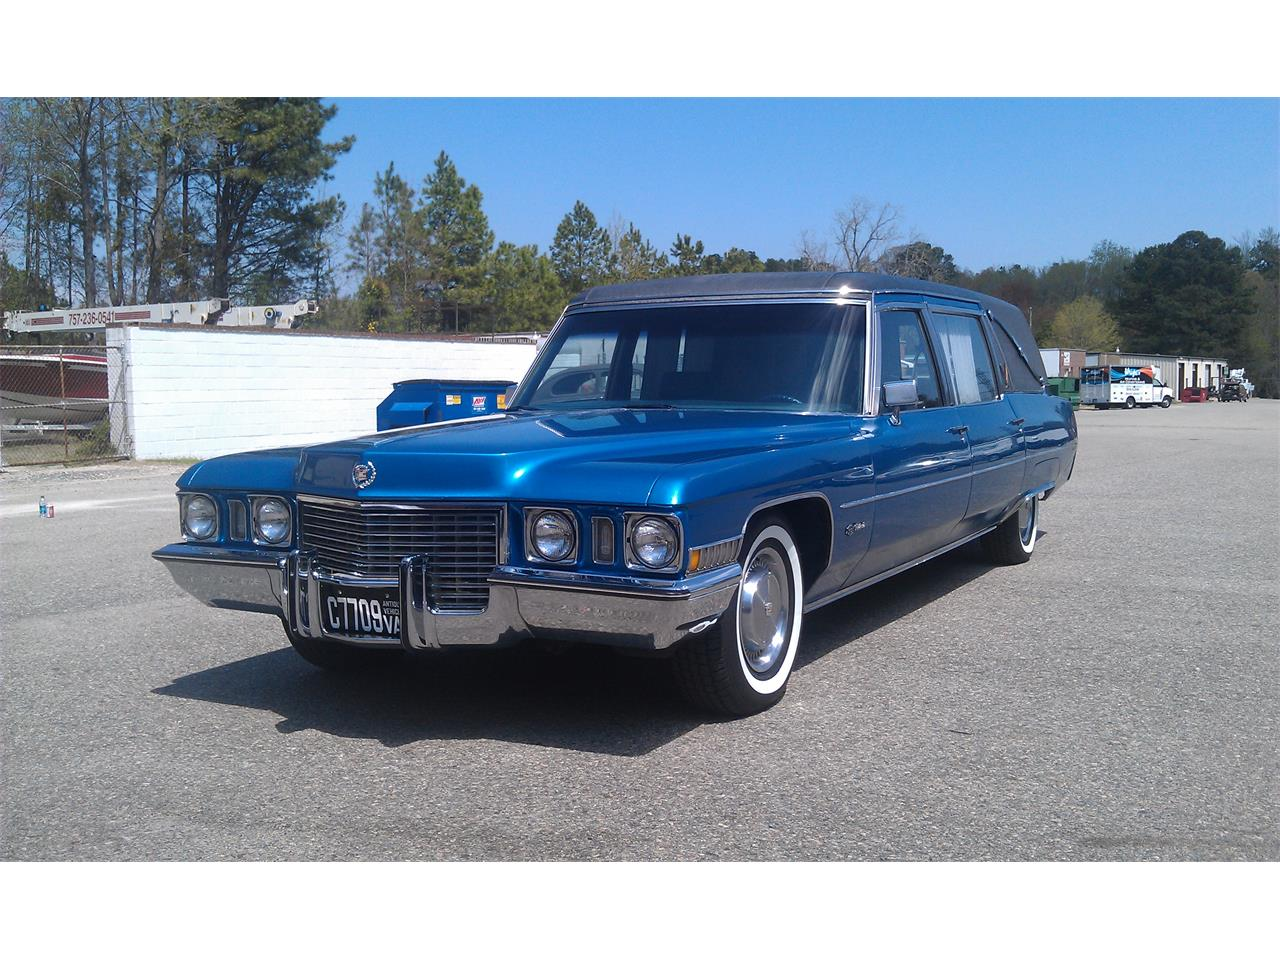 Large Picture of Classic 1972 Cadillac Hearse located in California Offered by a Private Seller - FJJH